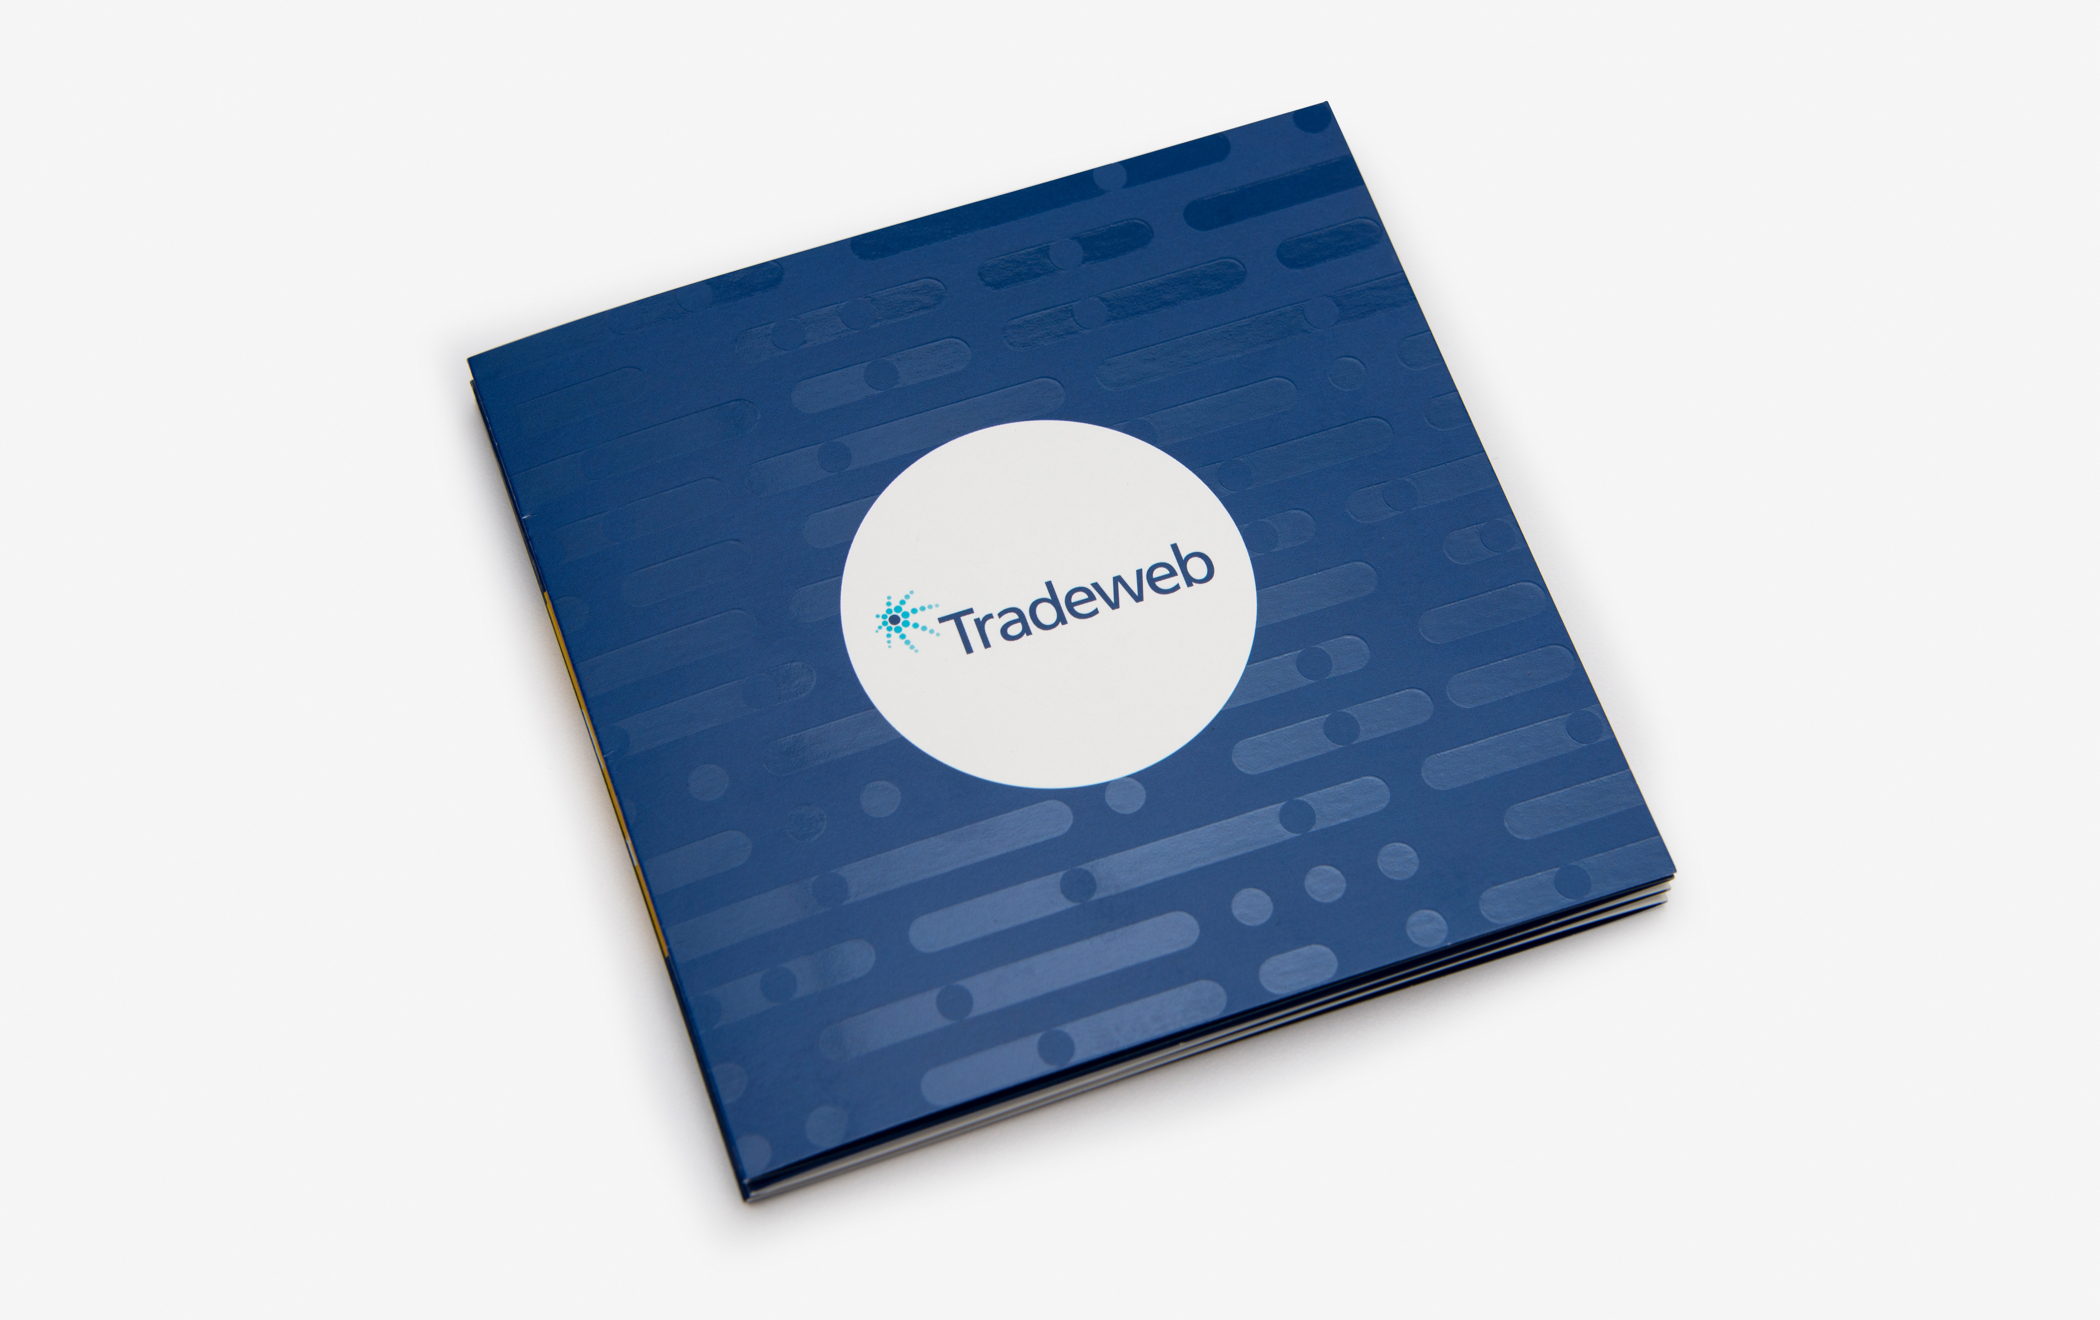 The cover of the Tradeweb employee brand book.